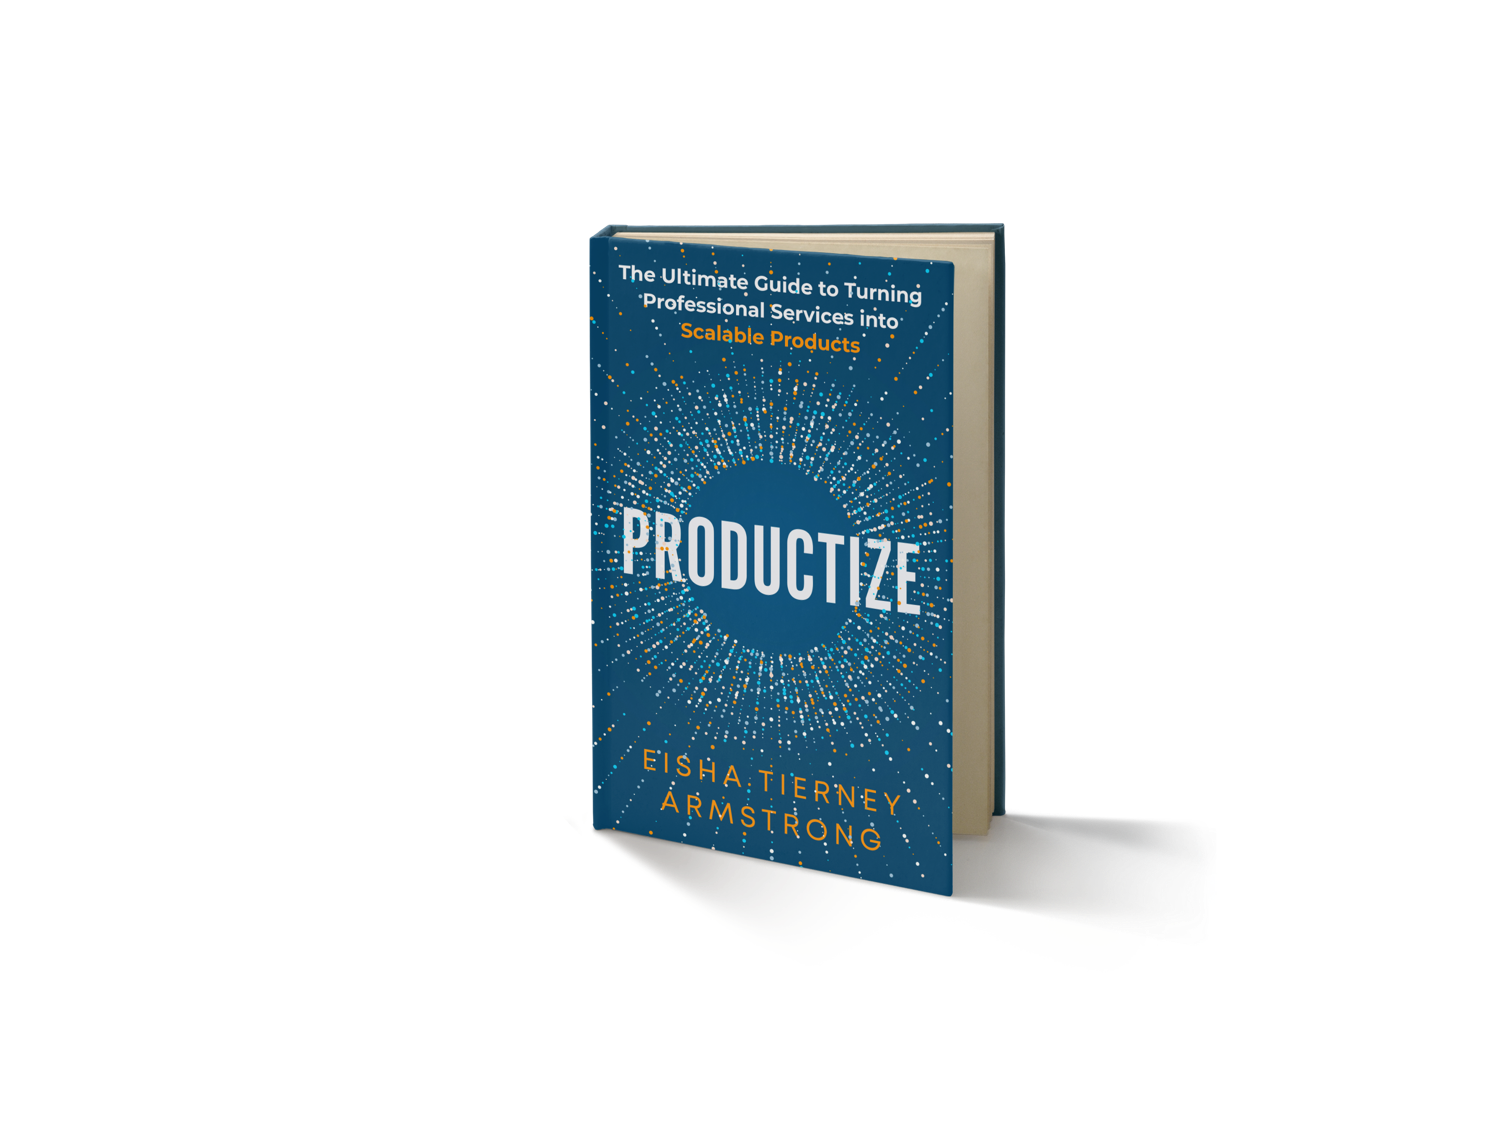 Productize: Turning Services into Scalable Products